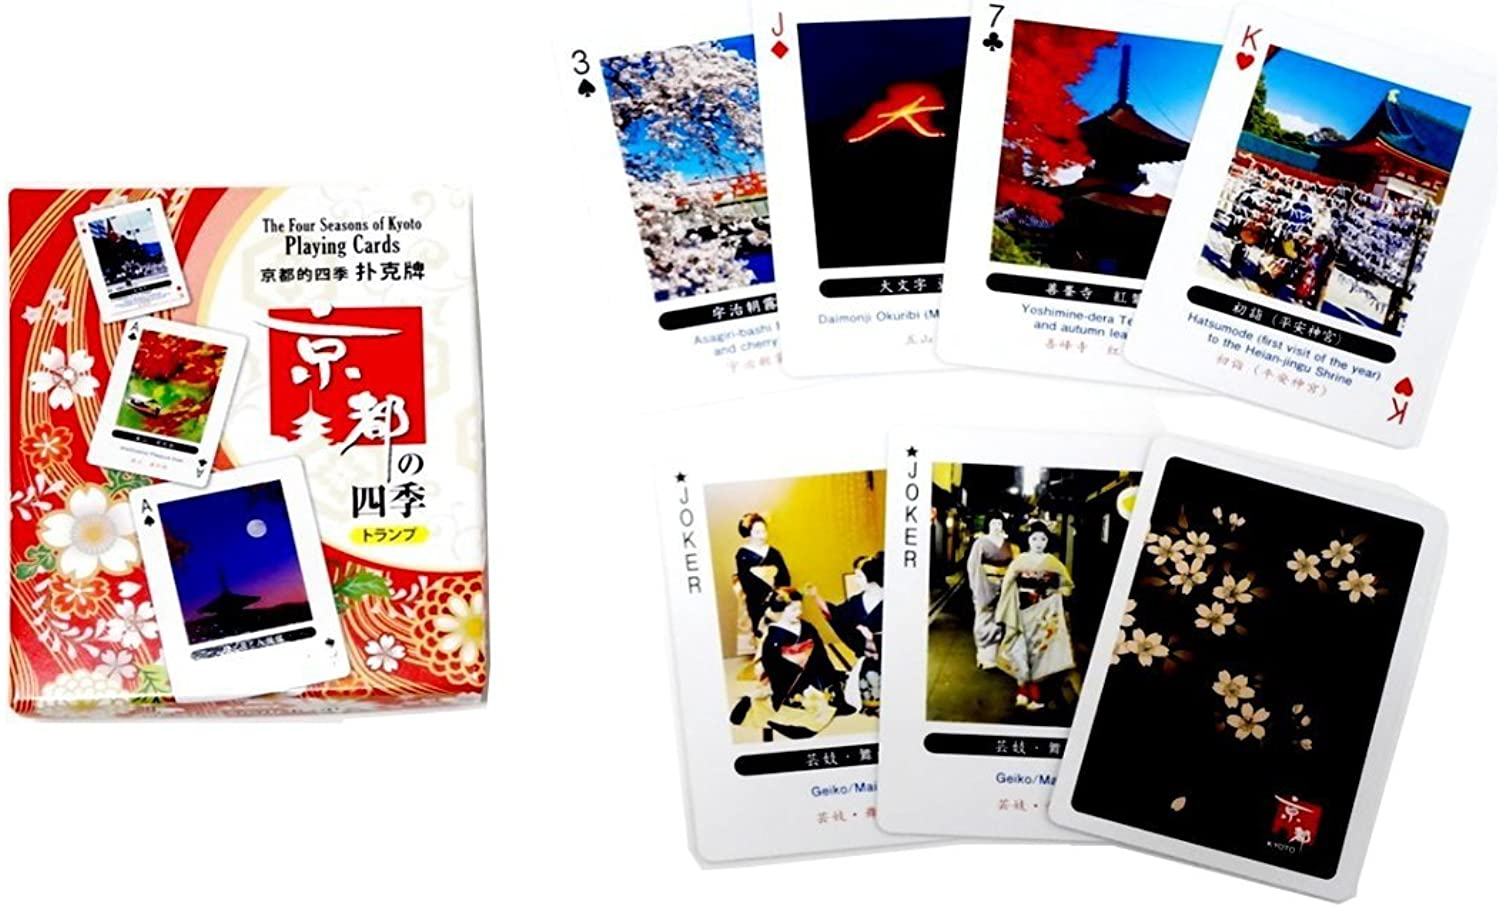 Kyoto of four seasons playing cards made in Japan